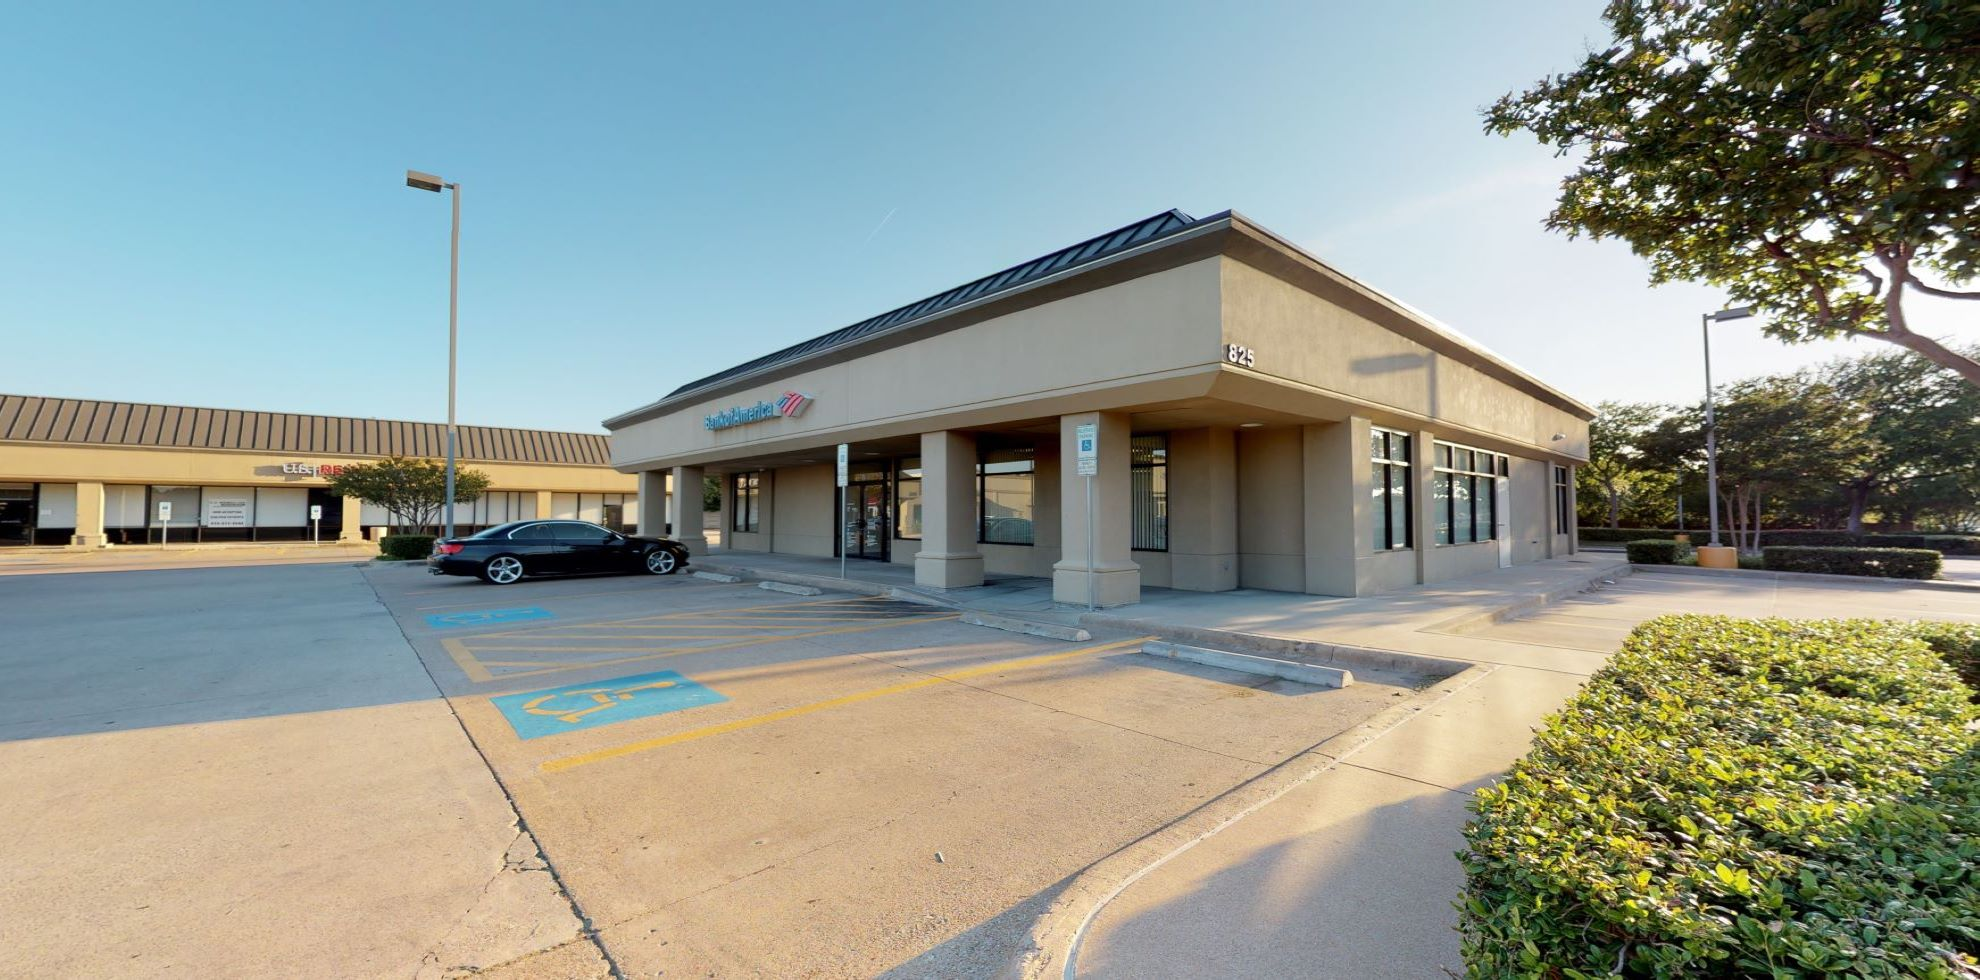 Bank of America financial center with drive-thru ATM | 825 Cross Timbers Rd, Flower Mound, TX 75028